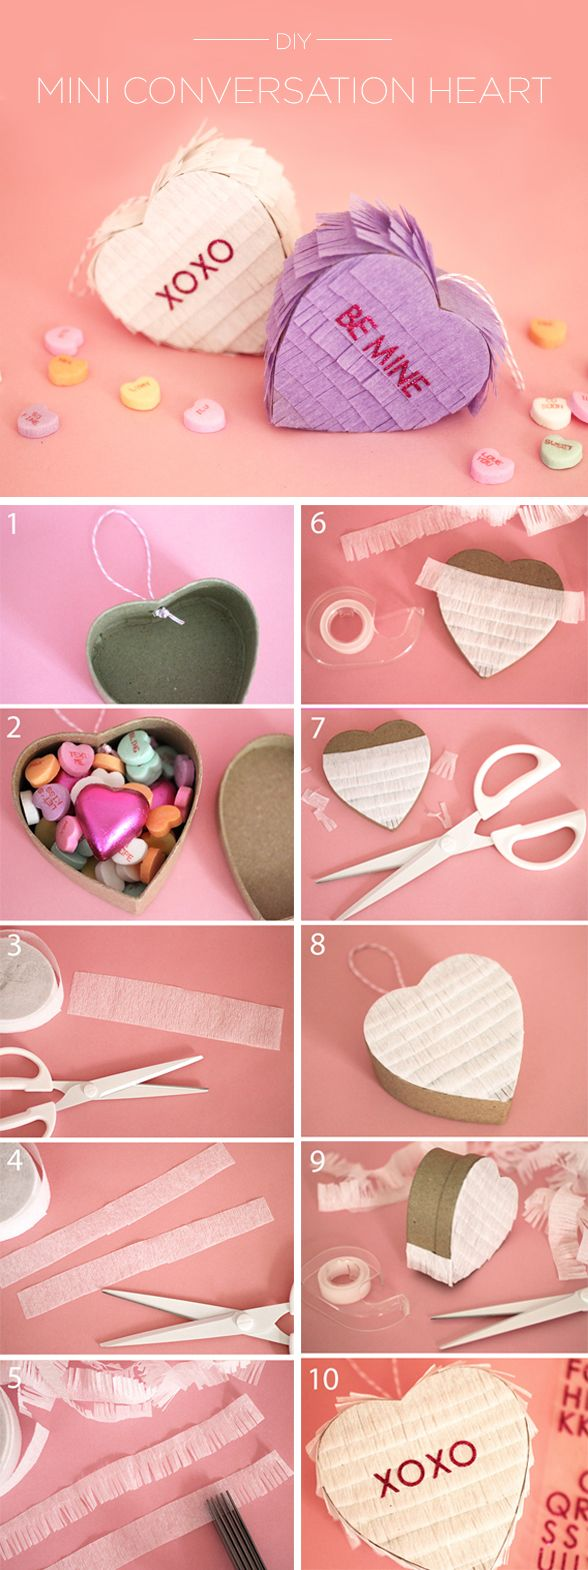 Charm your loved ones with these cute little conversation heart pinatas. #evitex...